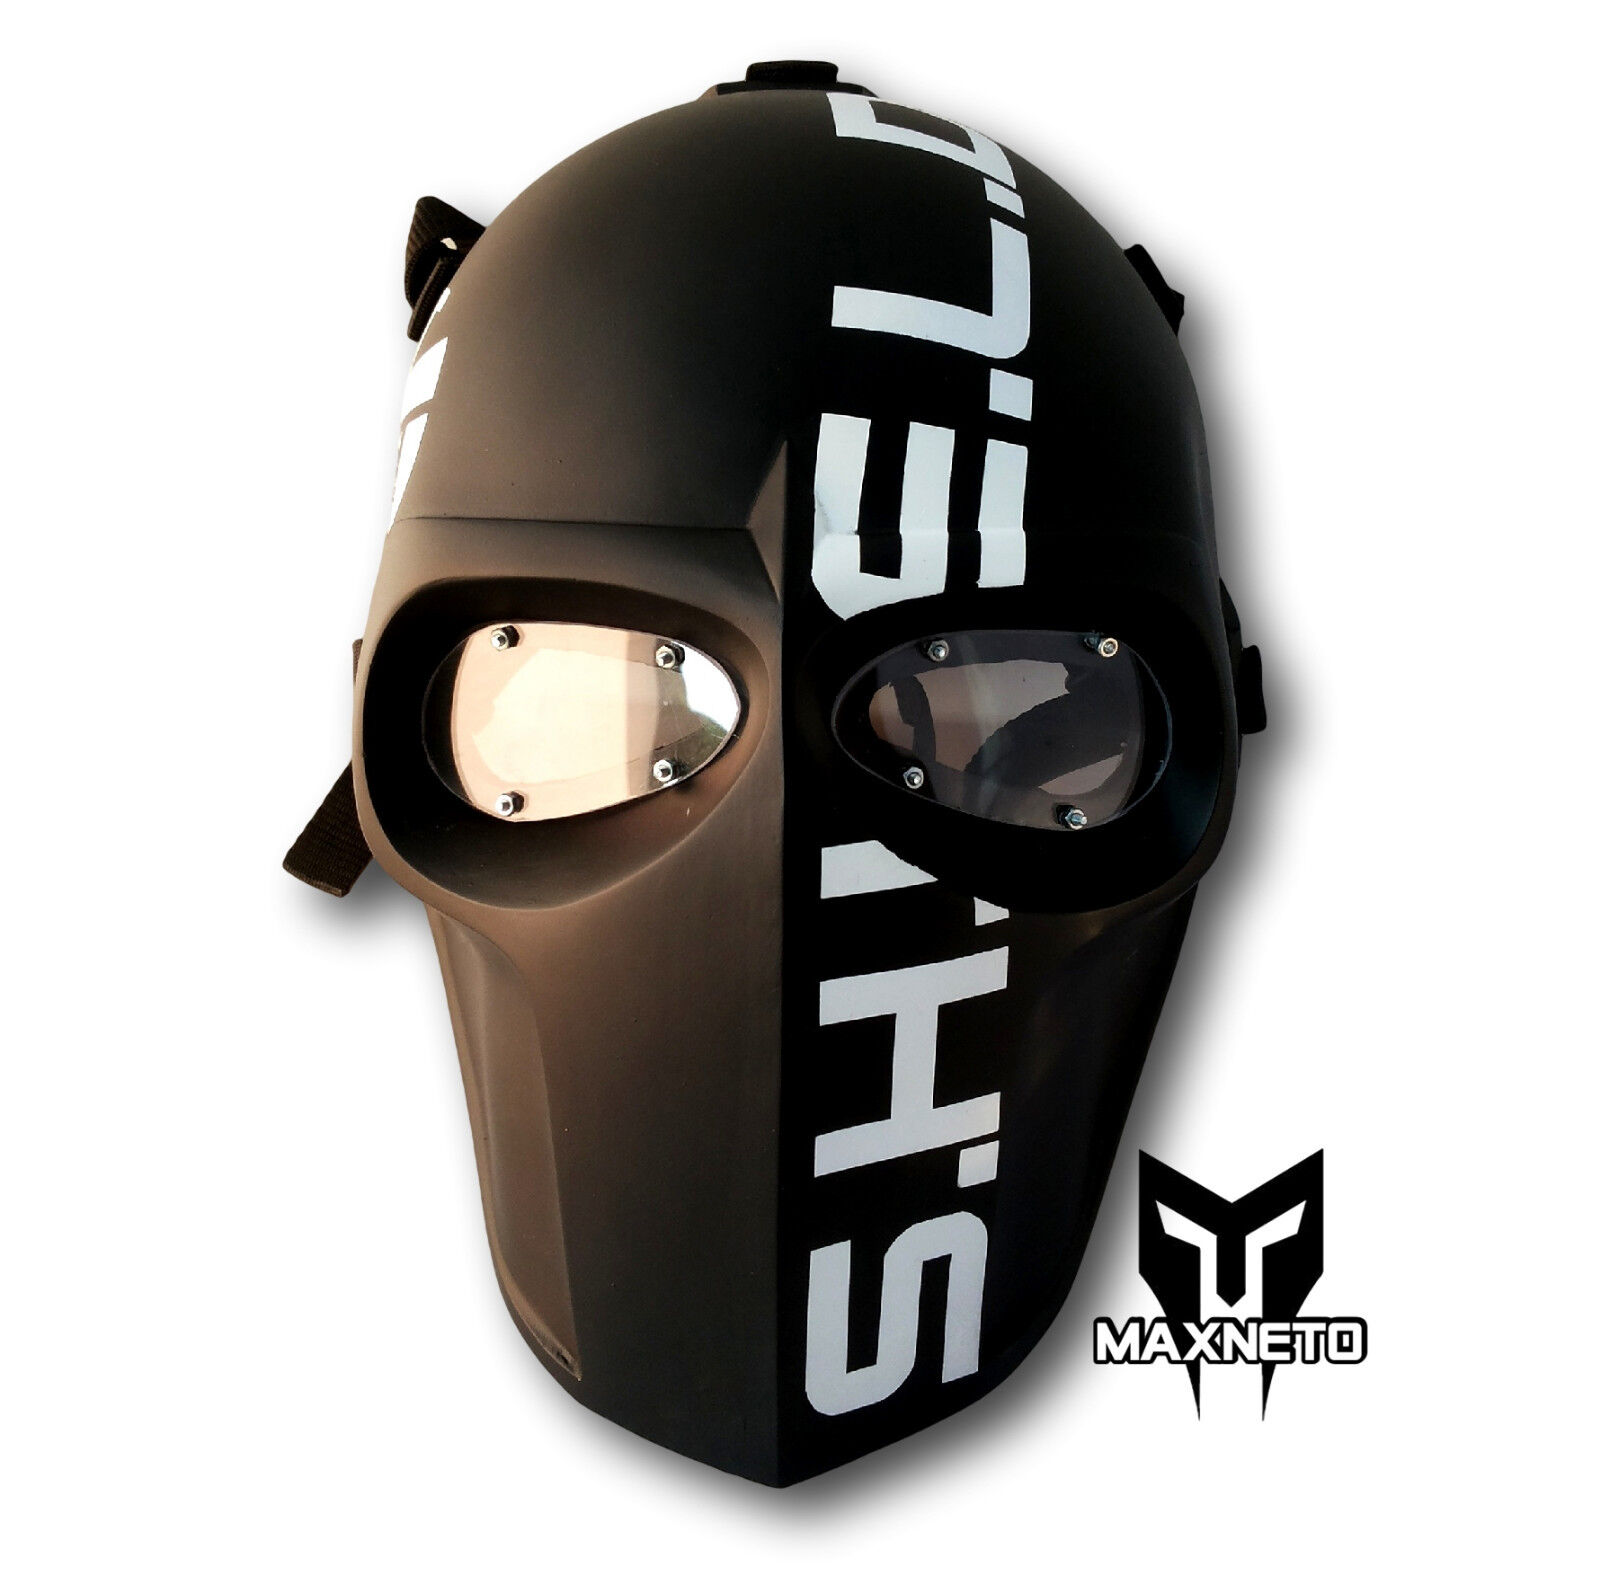 Maxneto Paintball Airsoft Army of Two Soporte Inferior pistola projoeger Full Face Mask S.H.I.E.L.D